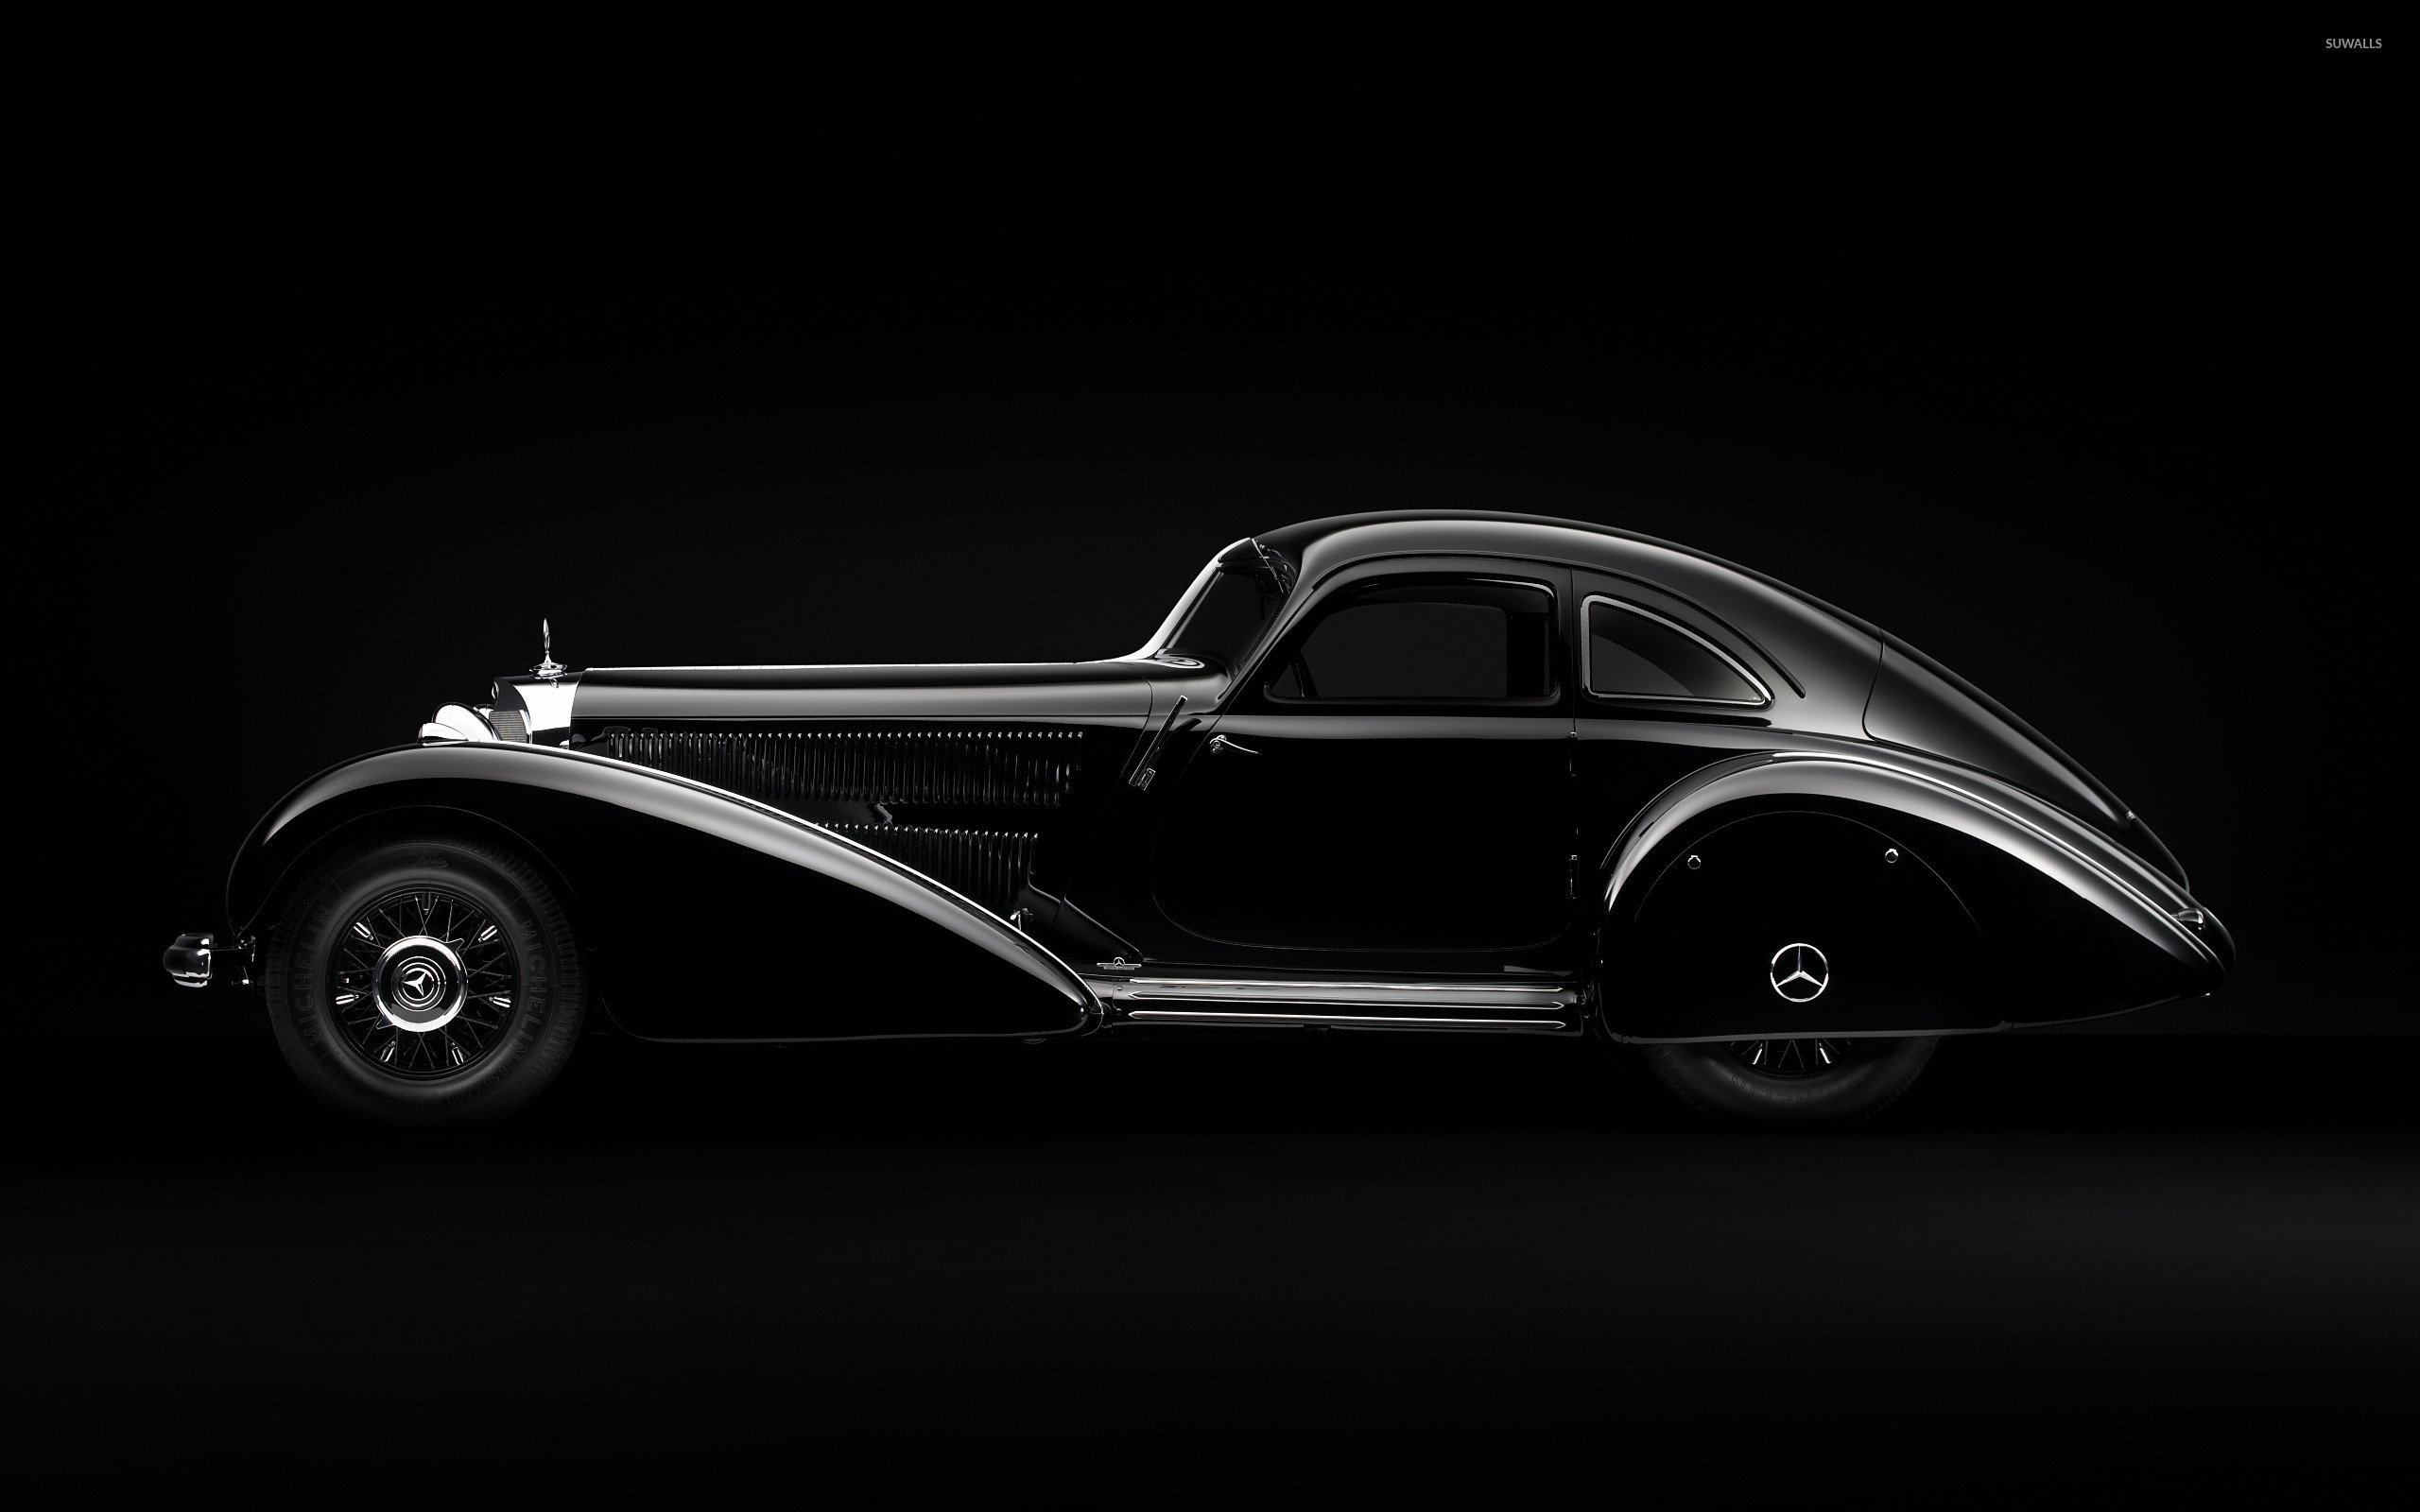 Vintage mercedes benz wallpaper car wallpapers 43820 for Old black and white photos for sale